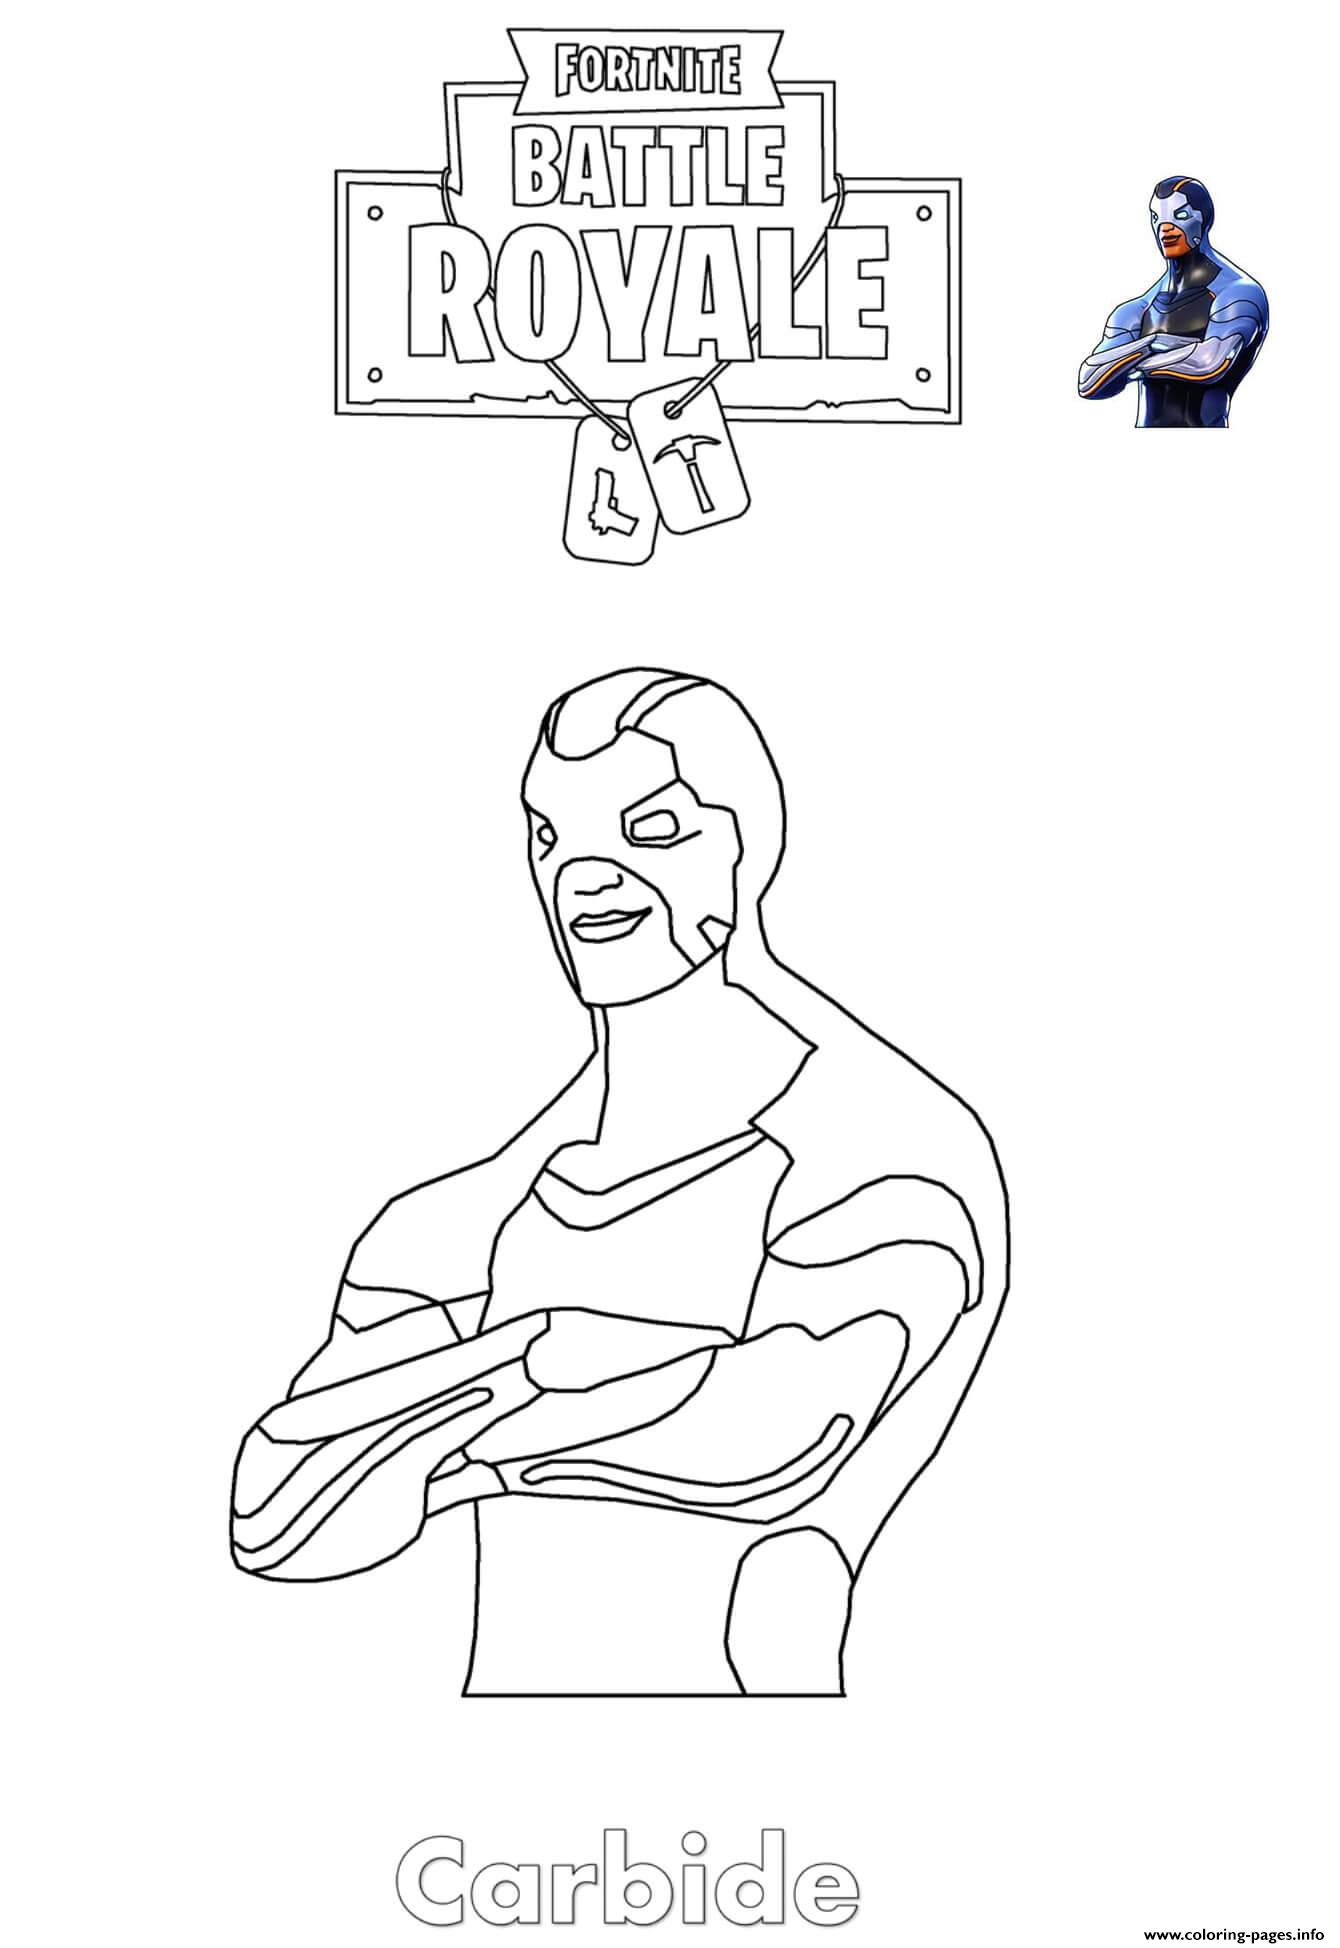 Carbide Fortnite Coloring Pages